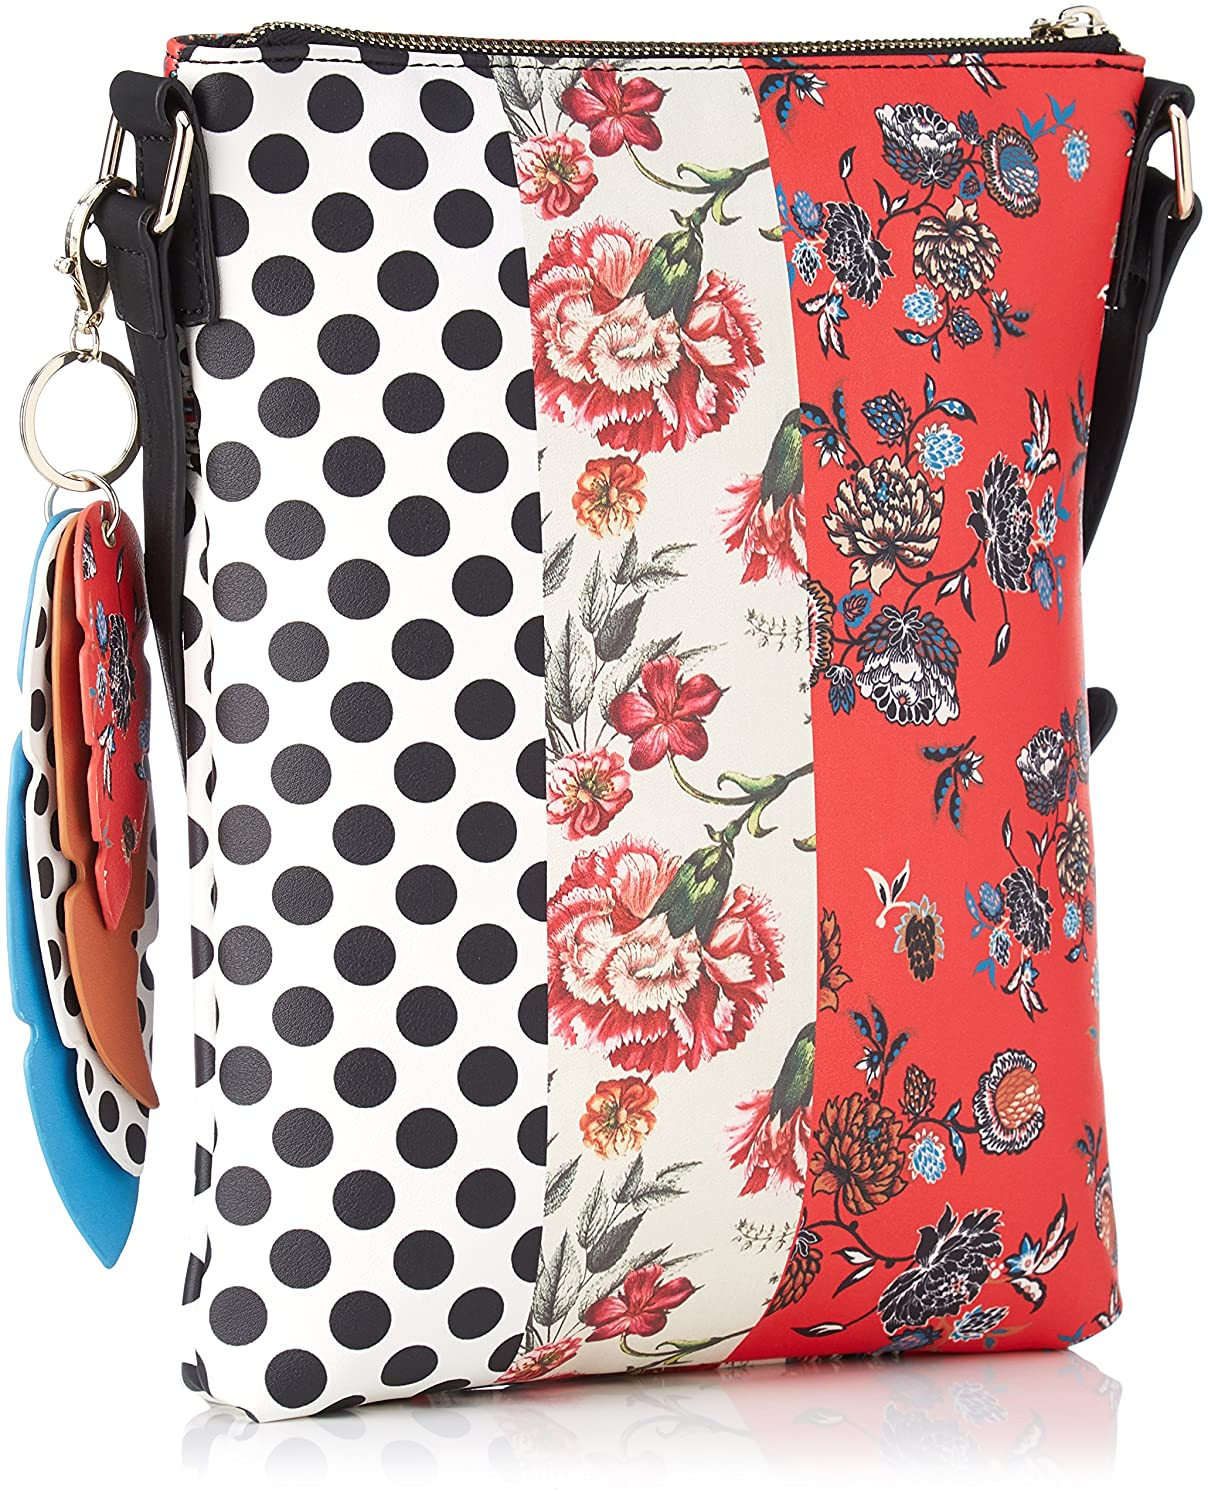 Desigual BOLS TRIPATCH GHANA Bisacce//Tracolle donne Bianco//Rosso Tracolle